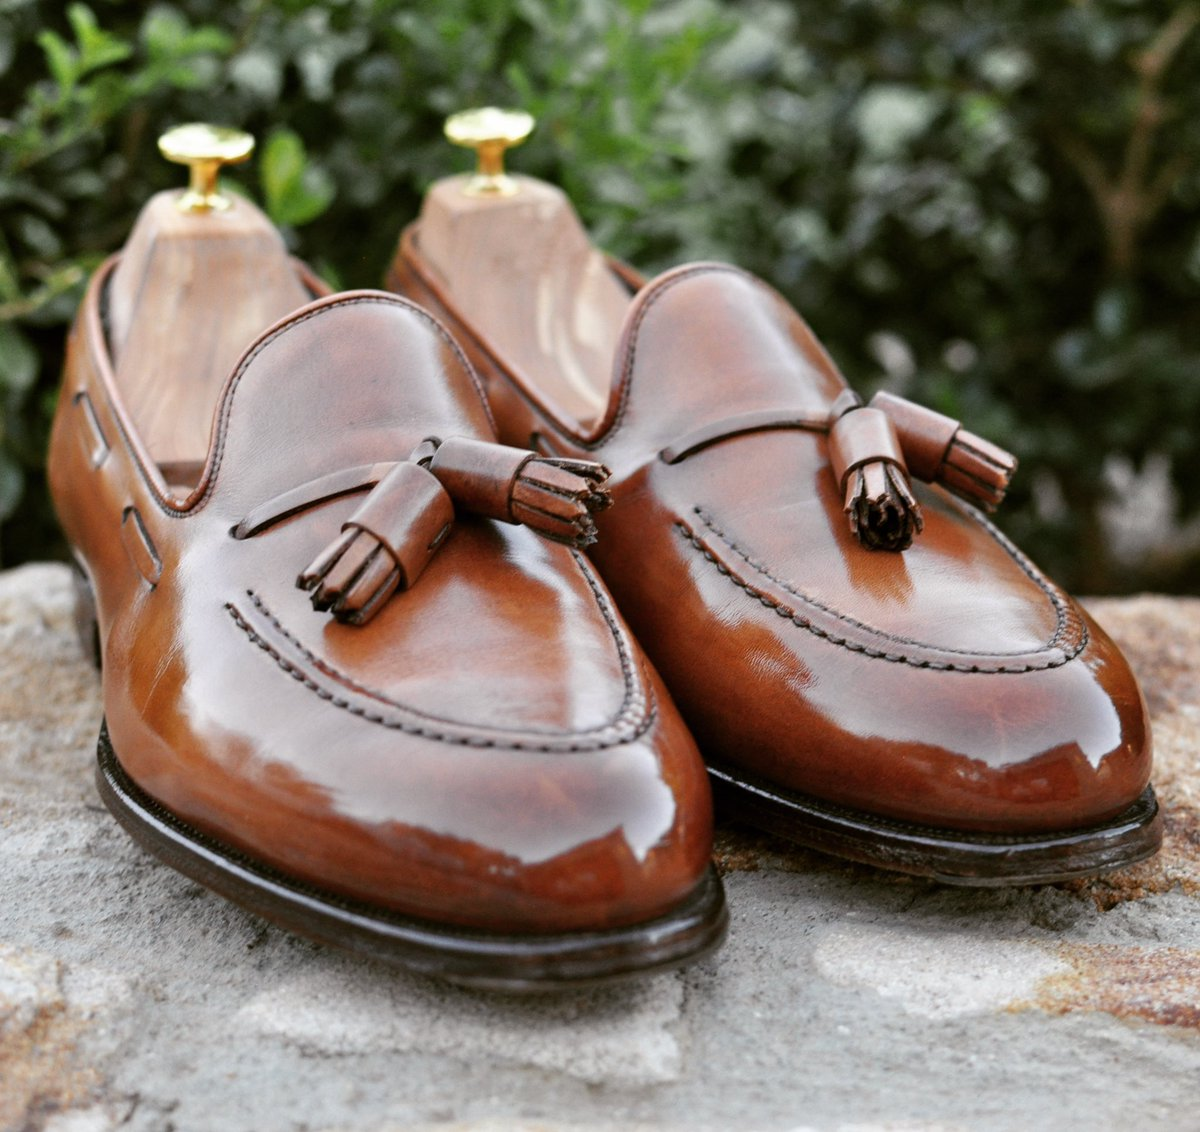 """2bc1bf4130 Image from tomorrow s article covering Crockett and Jones Hand Grade shoes.  This image  my Hand Grade """"Cavendish"""" in tan antique calf."""